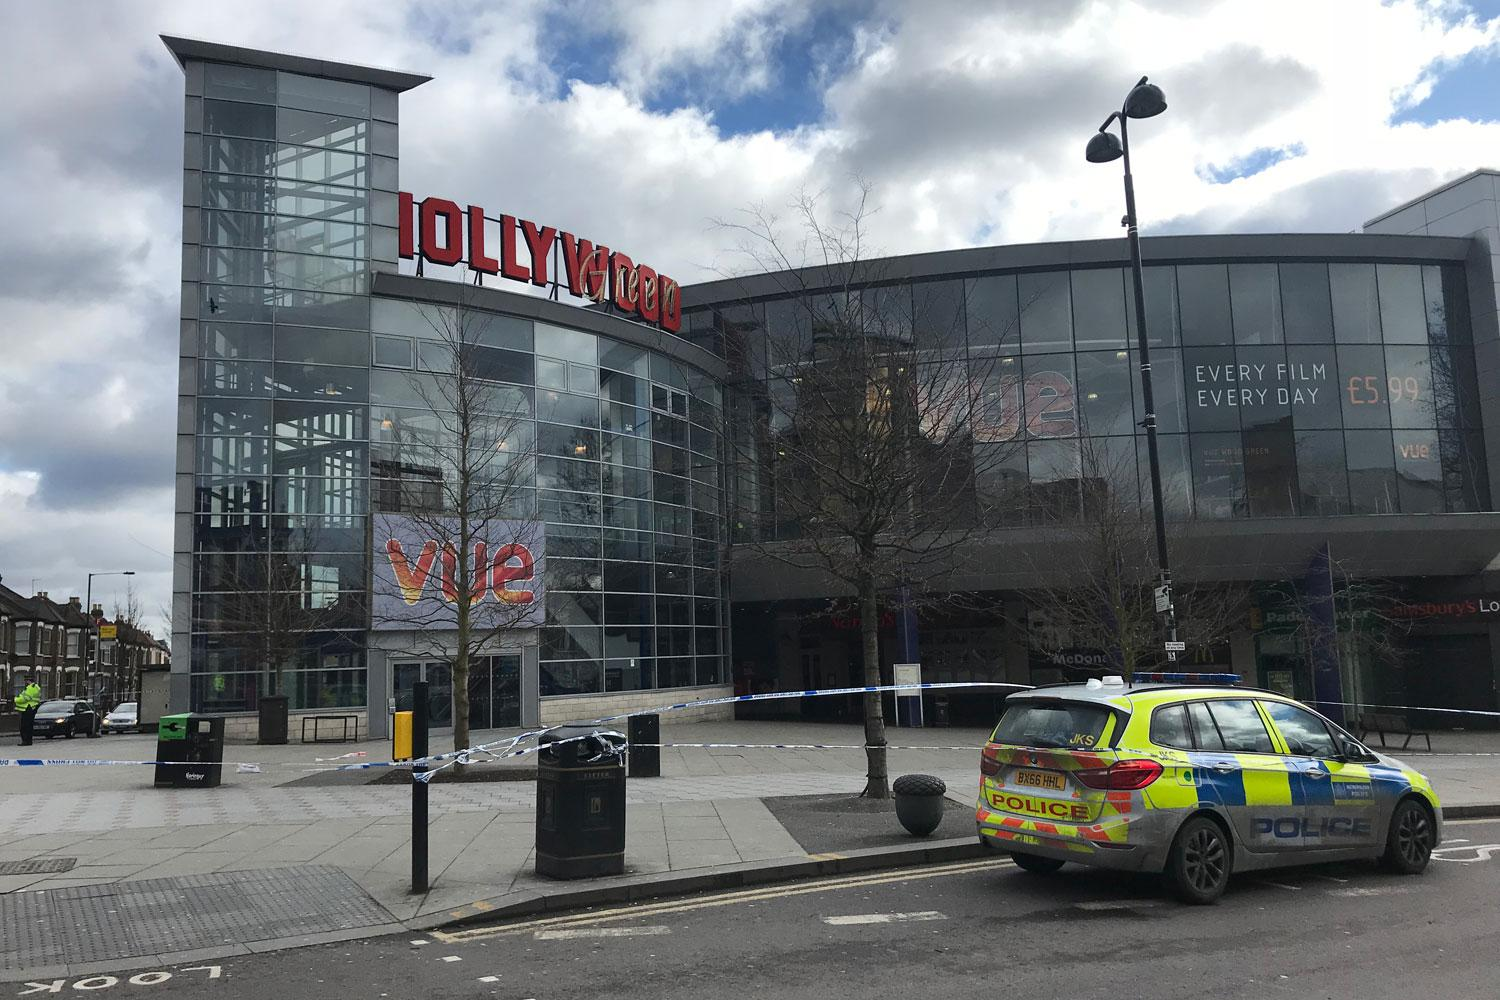 19 Year Old Shot Dead In Wood Green At Entrance To Cinema